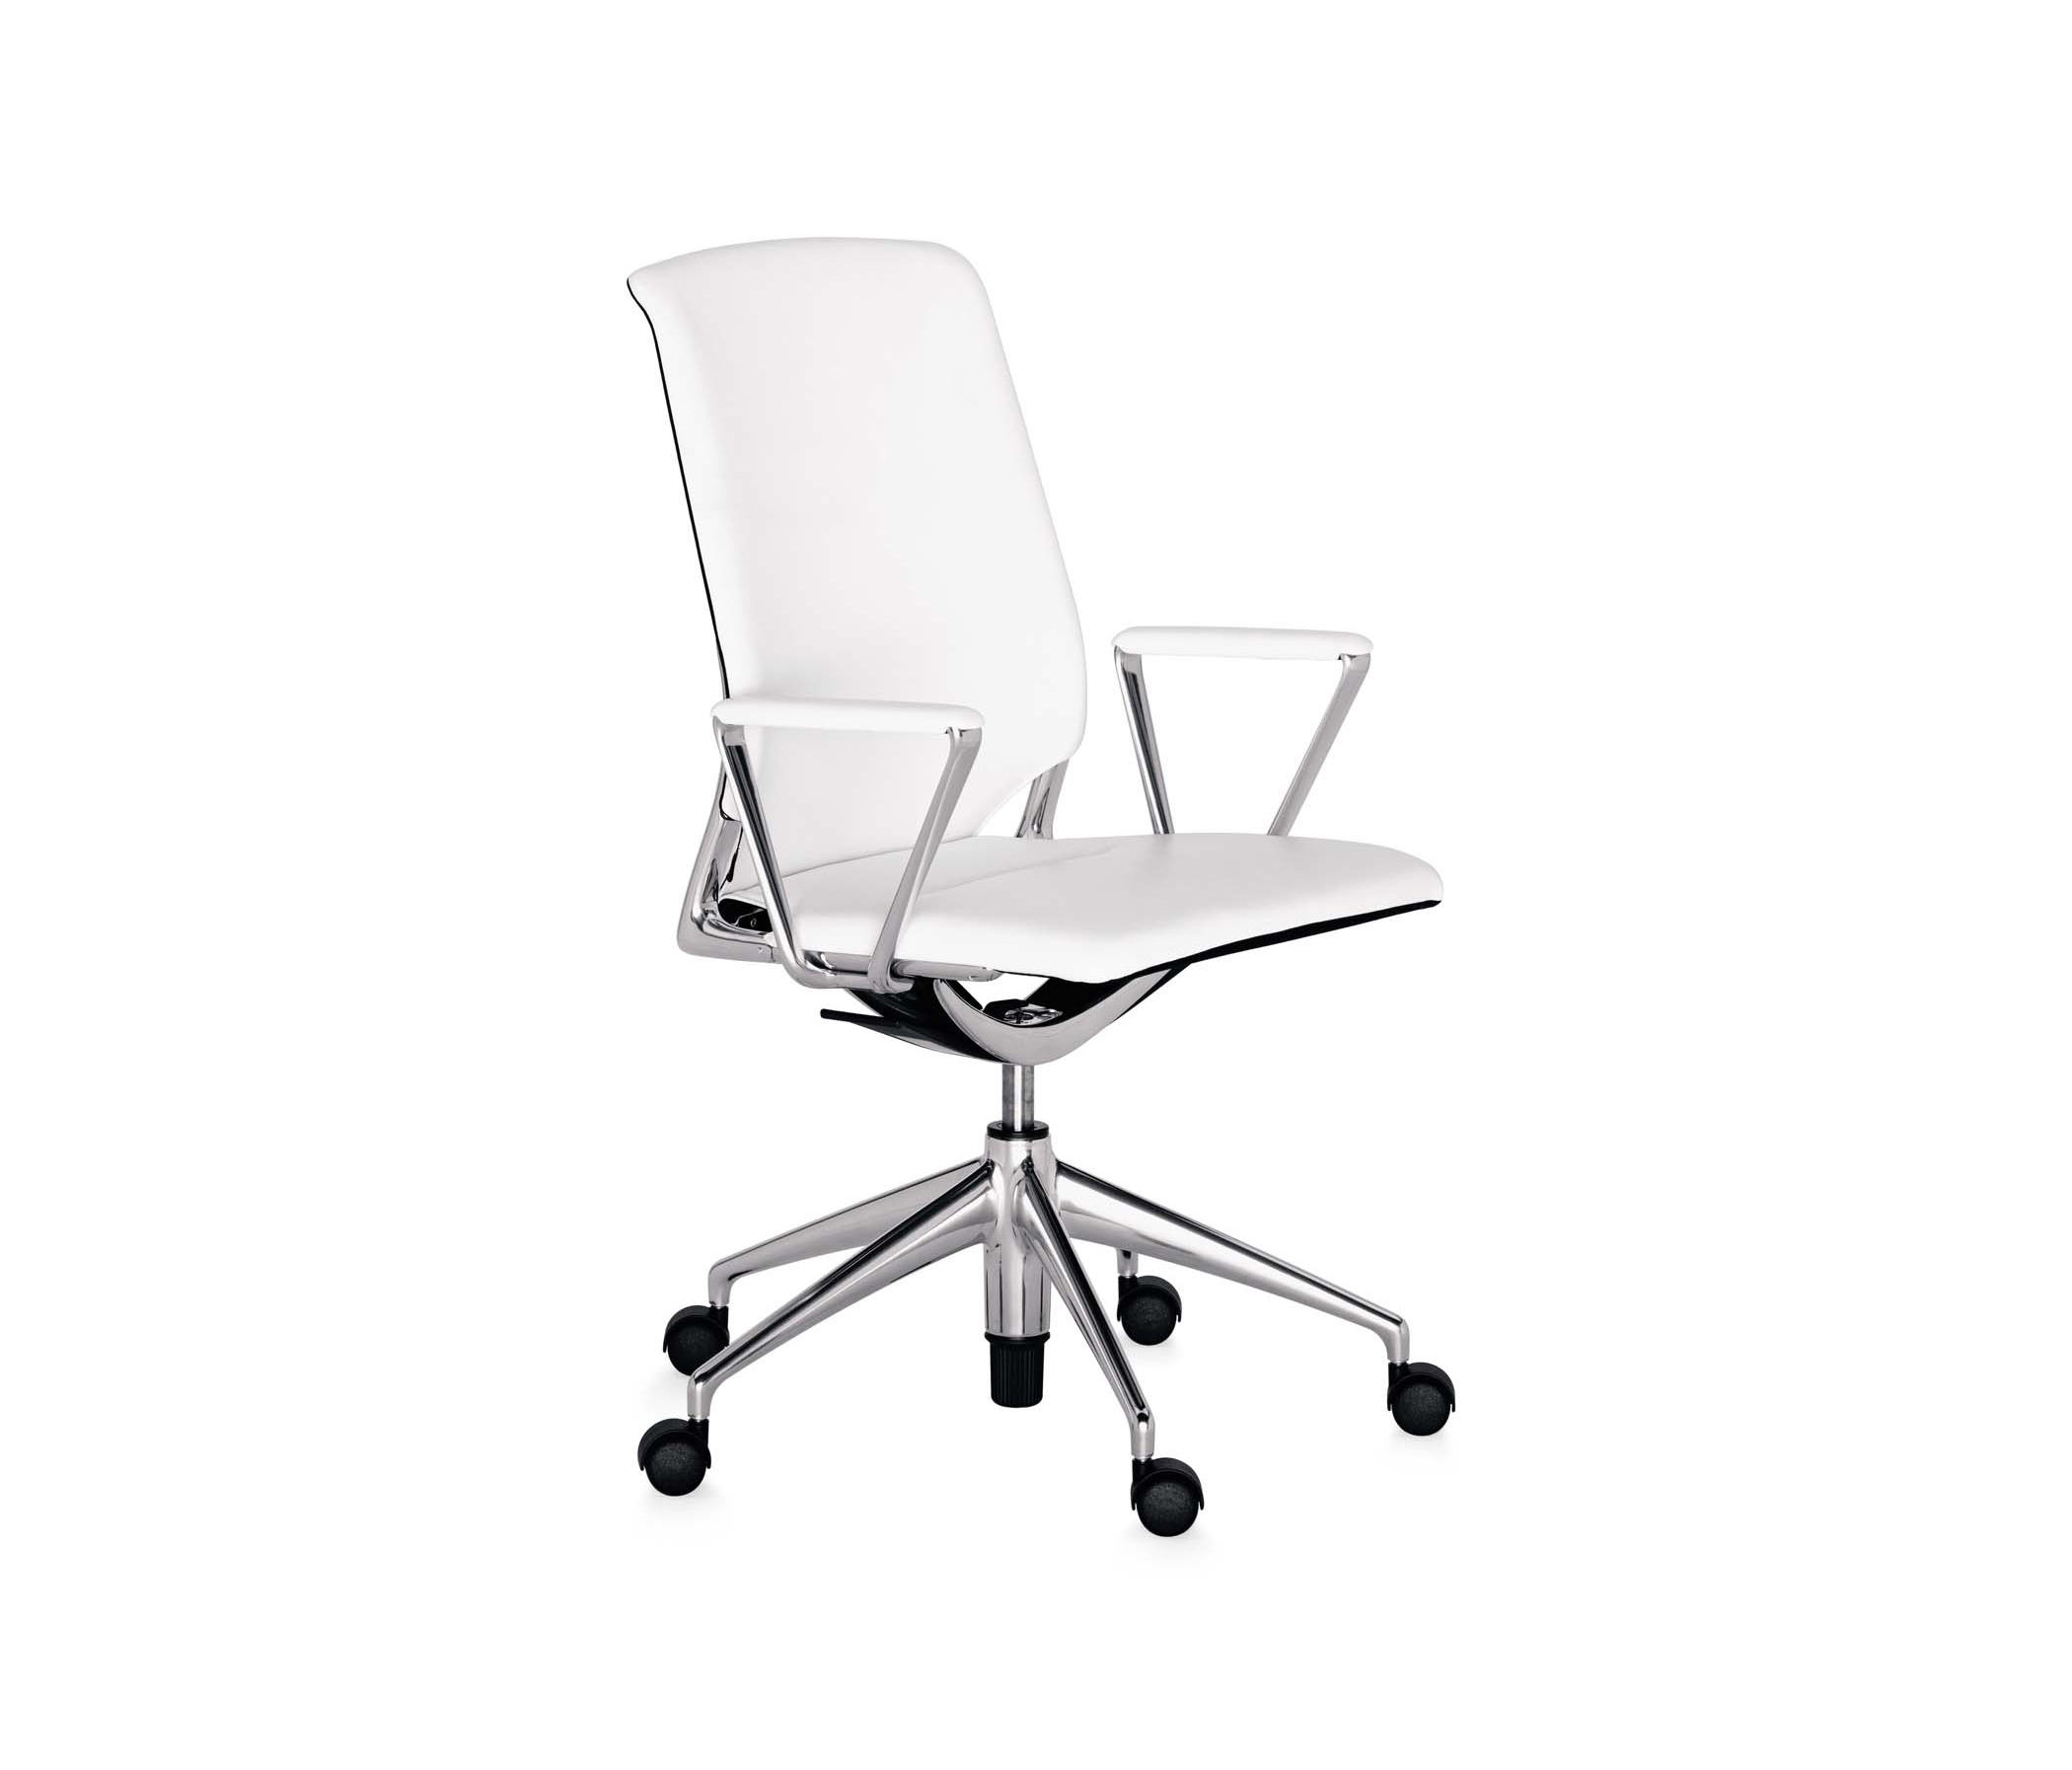 MEDA CHAIR Management chairs from Vitra